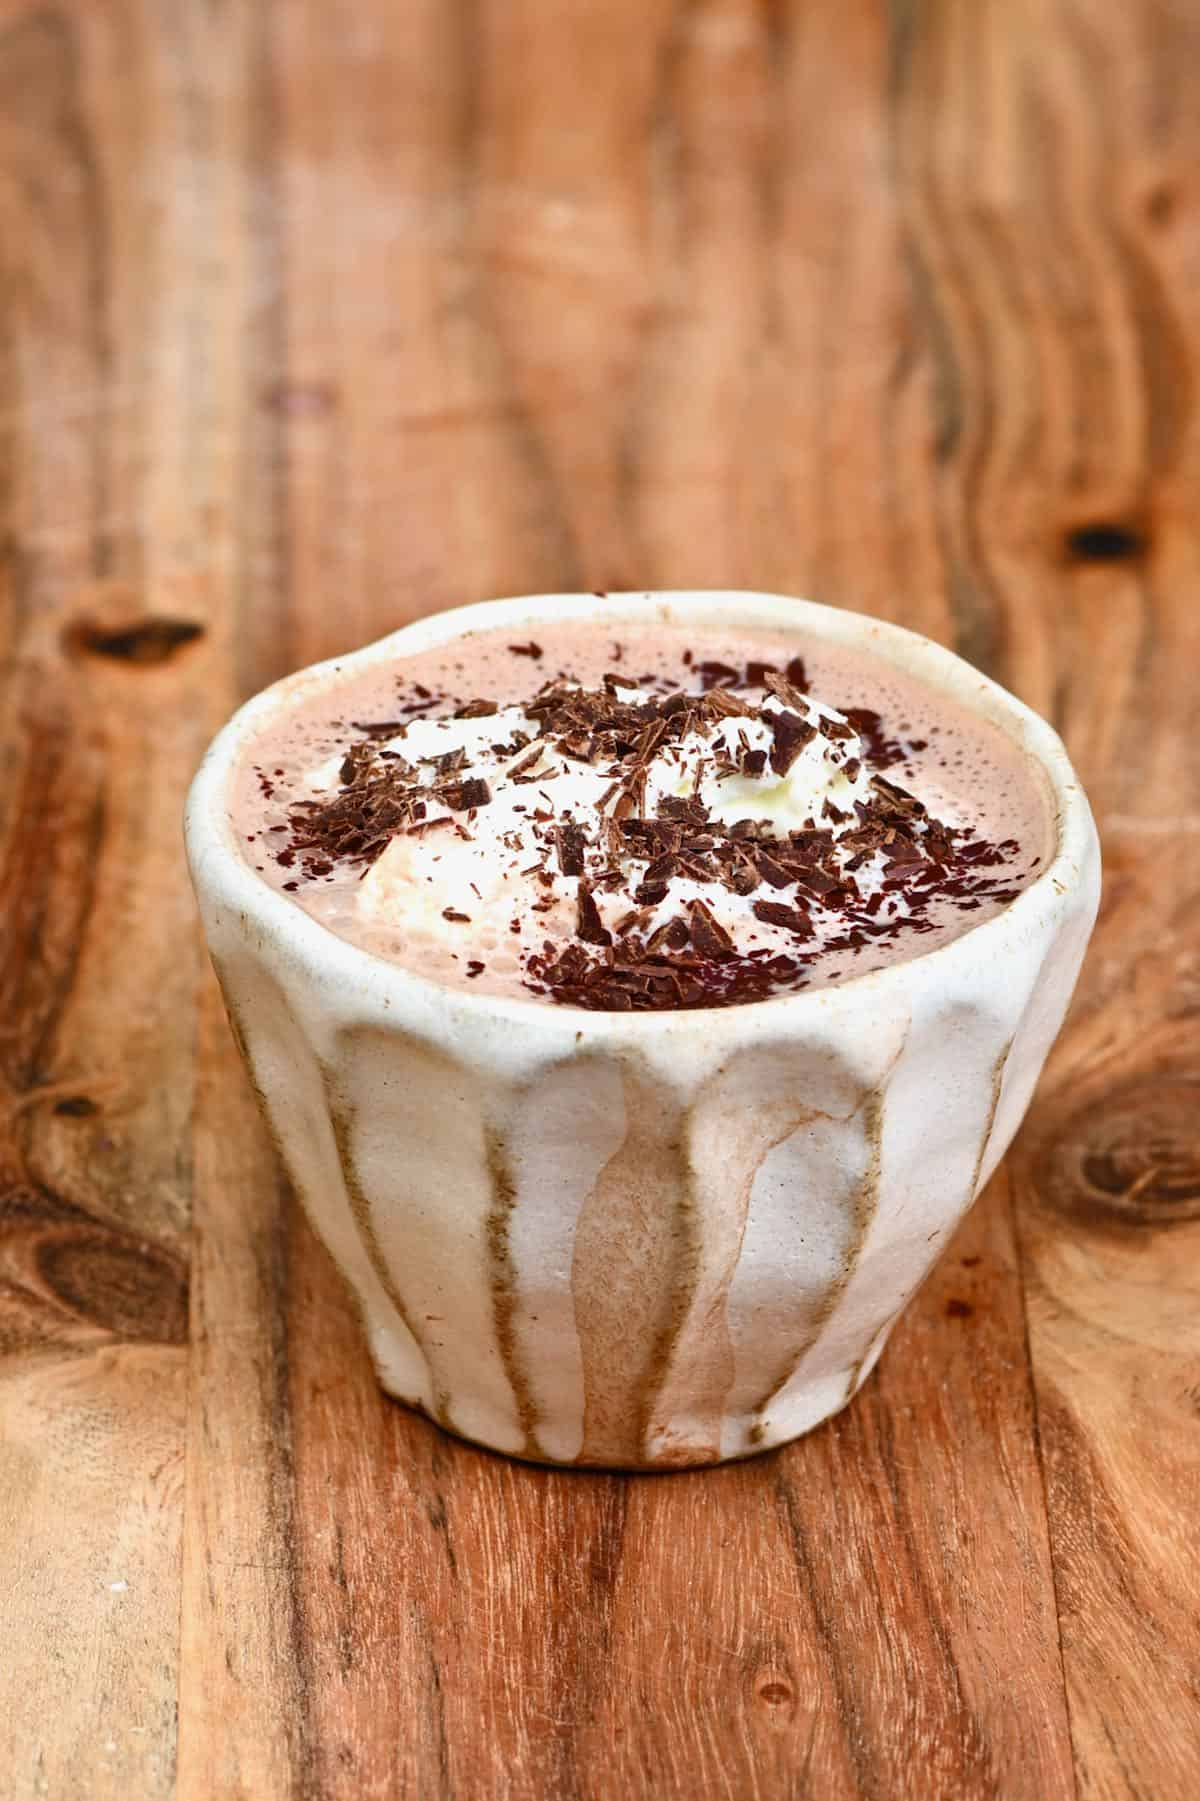 Hot chocolate in a small cup with chocolate shavings on top